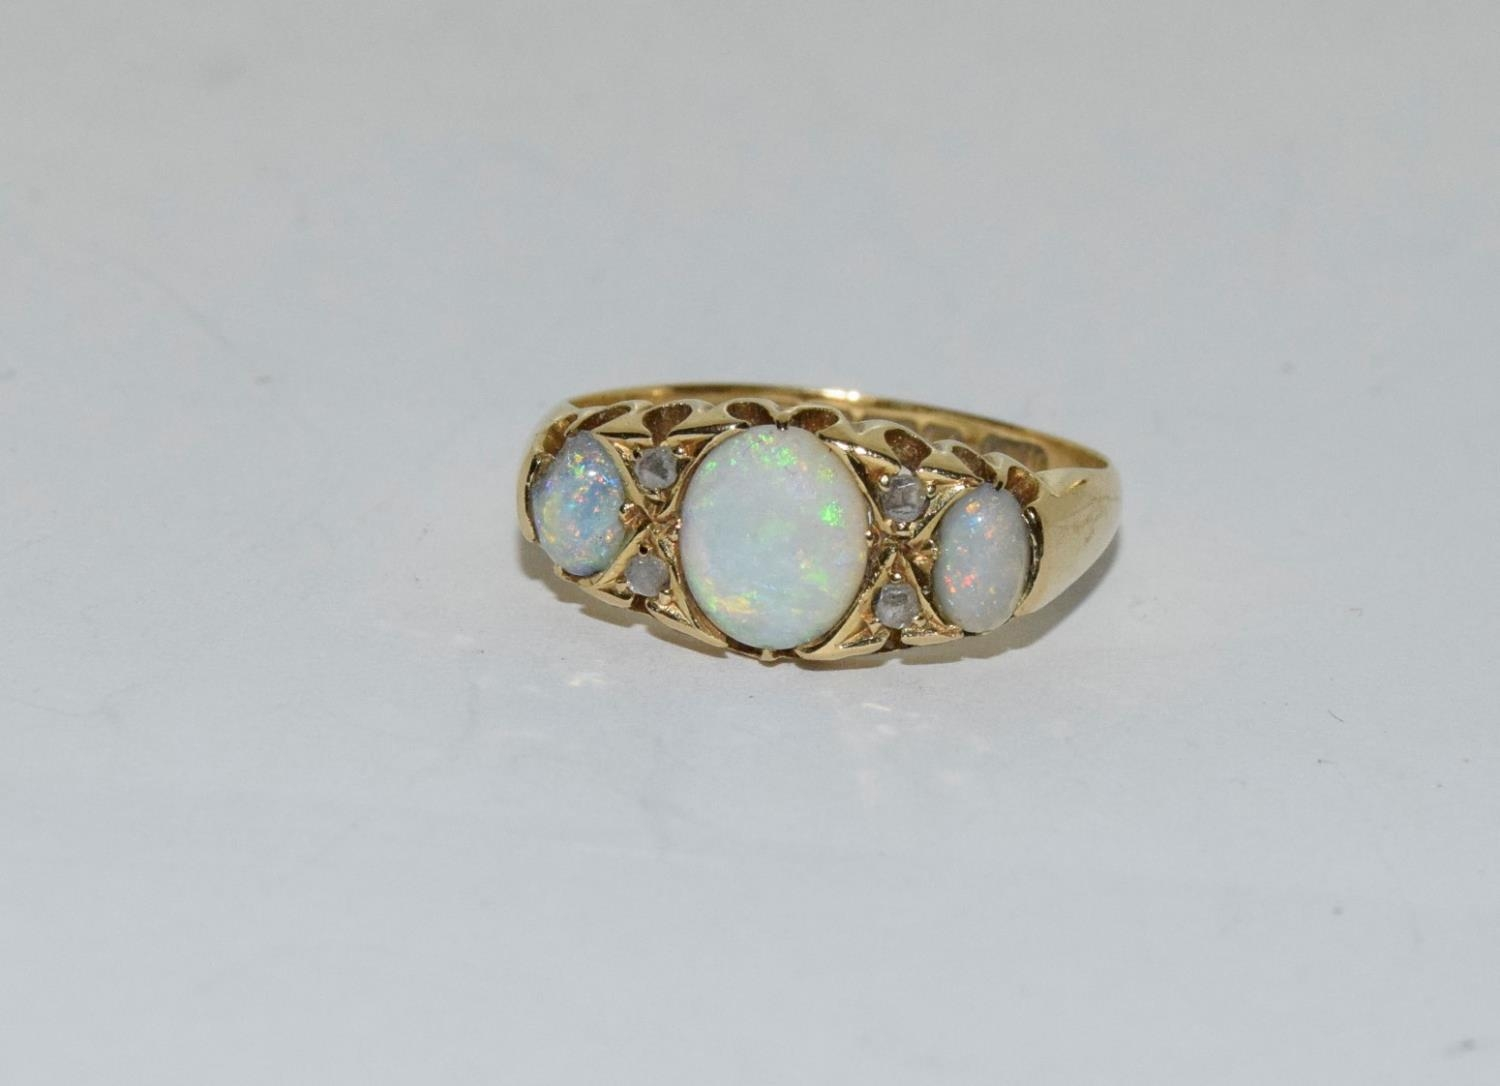 Antique 18ct gold opal/diamond boxed ring, Size P - Image 6 of 6